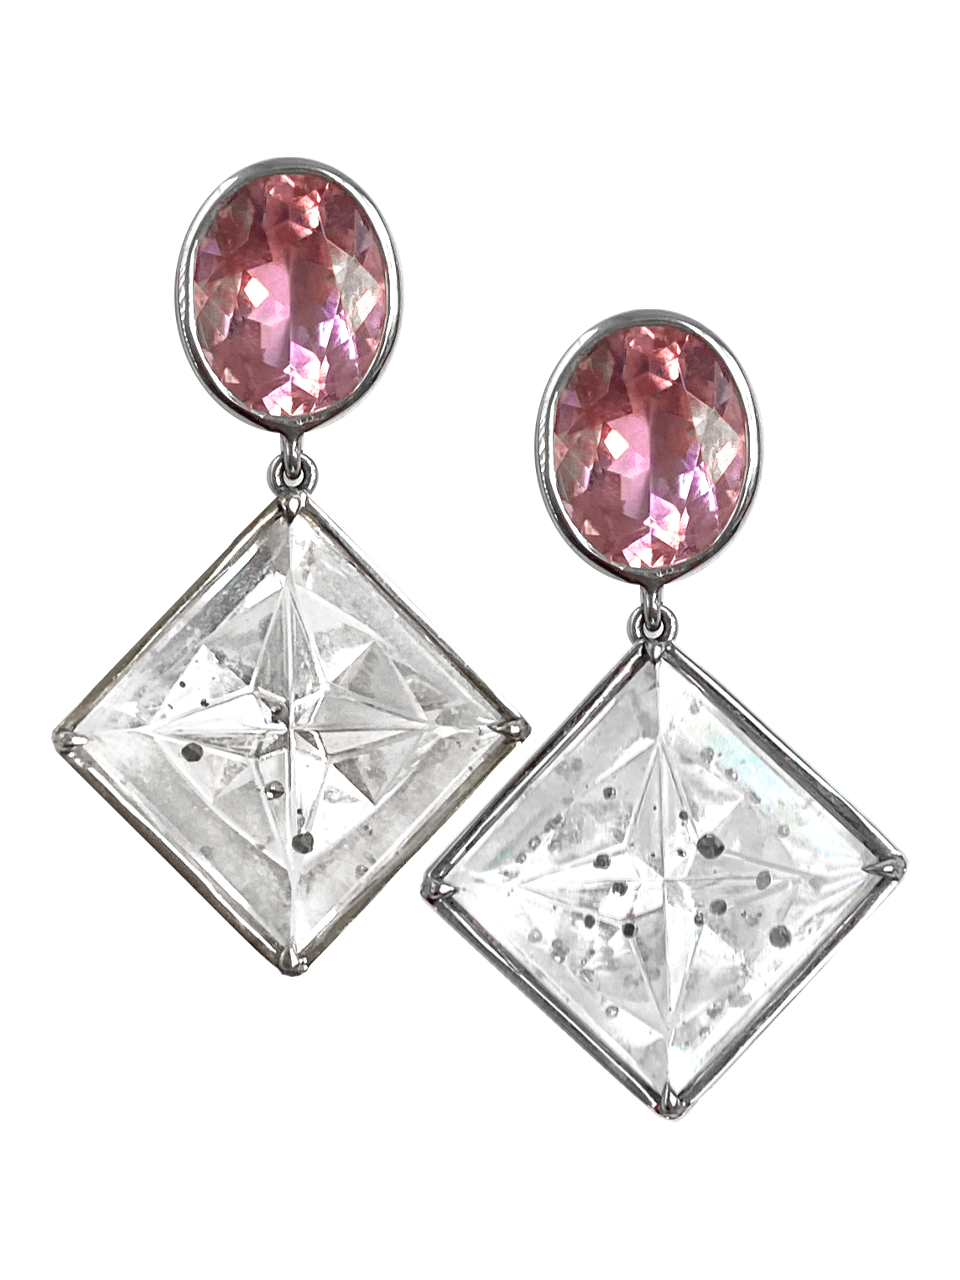 Pink Tourmaline and Quartz with Pyrite Crystal Earrings-1